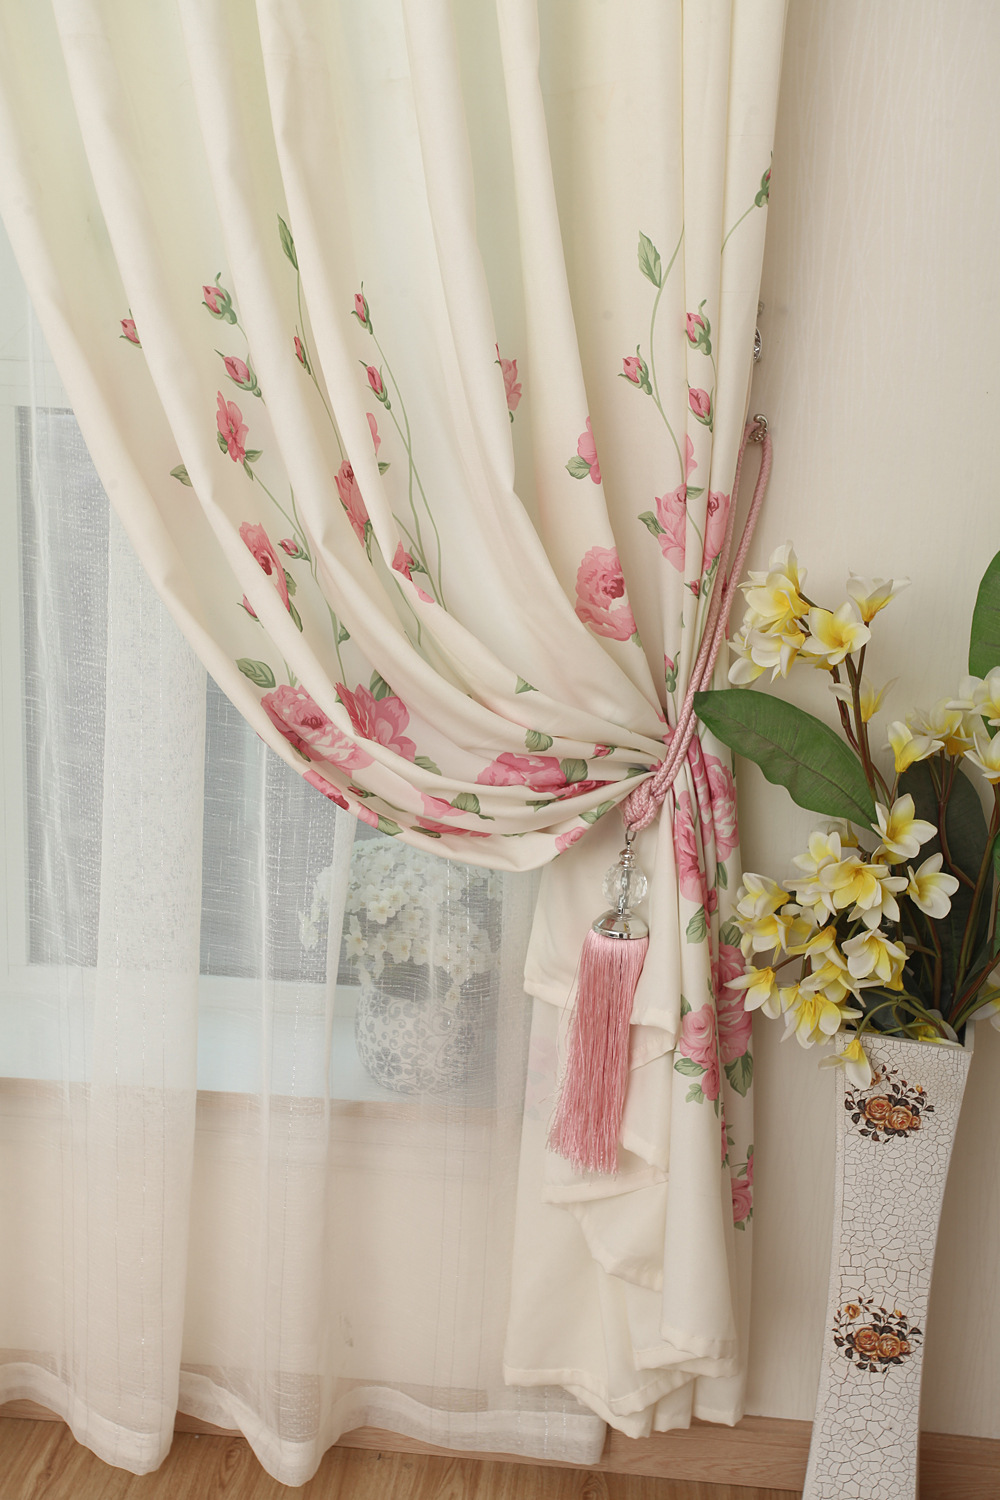 Cute living room curtains - Online O2 Princess Rustic Finished Products Fabric Rose Cute Little Flowers Living Room Girls Country Curtains No Include Valance